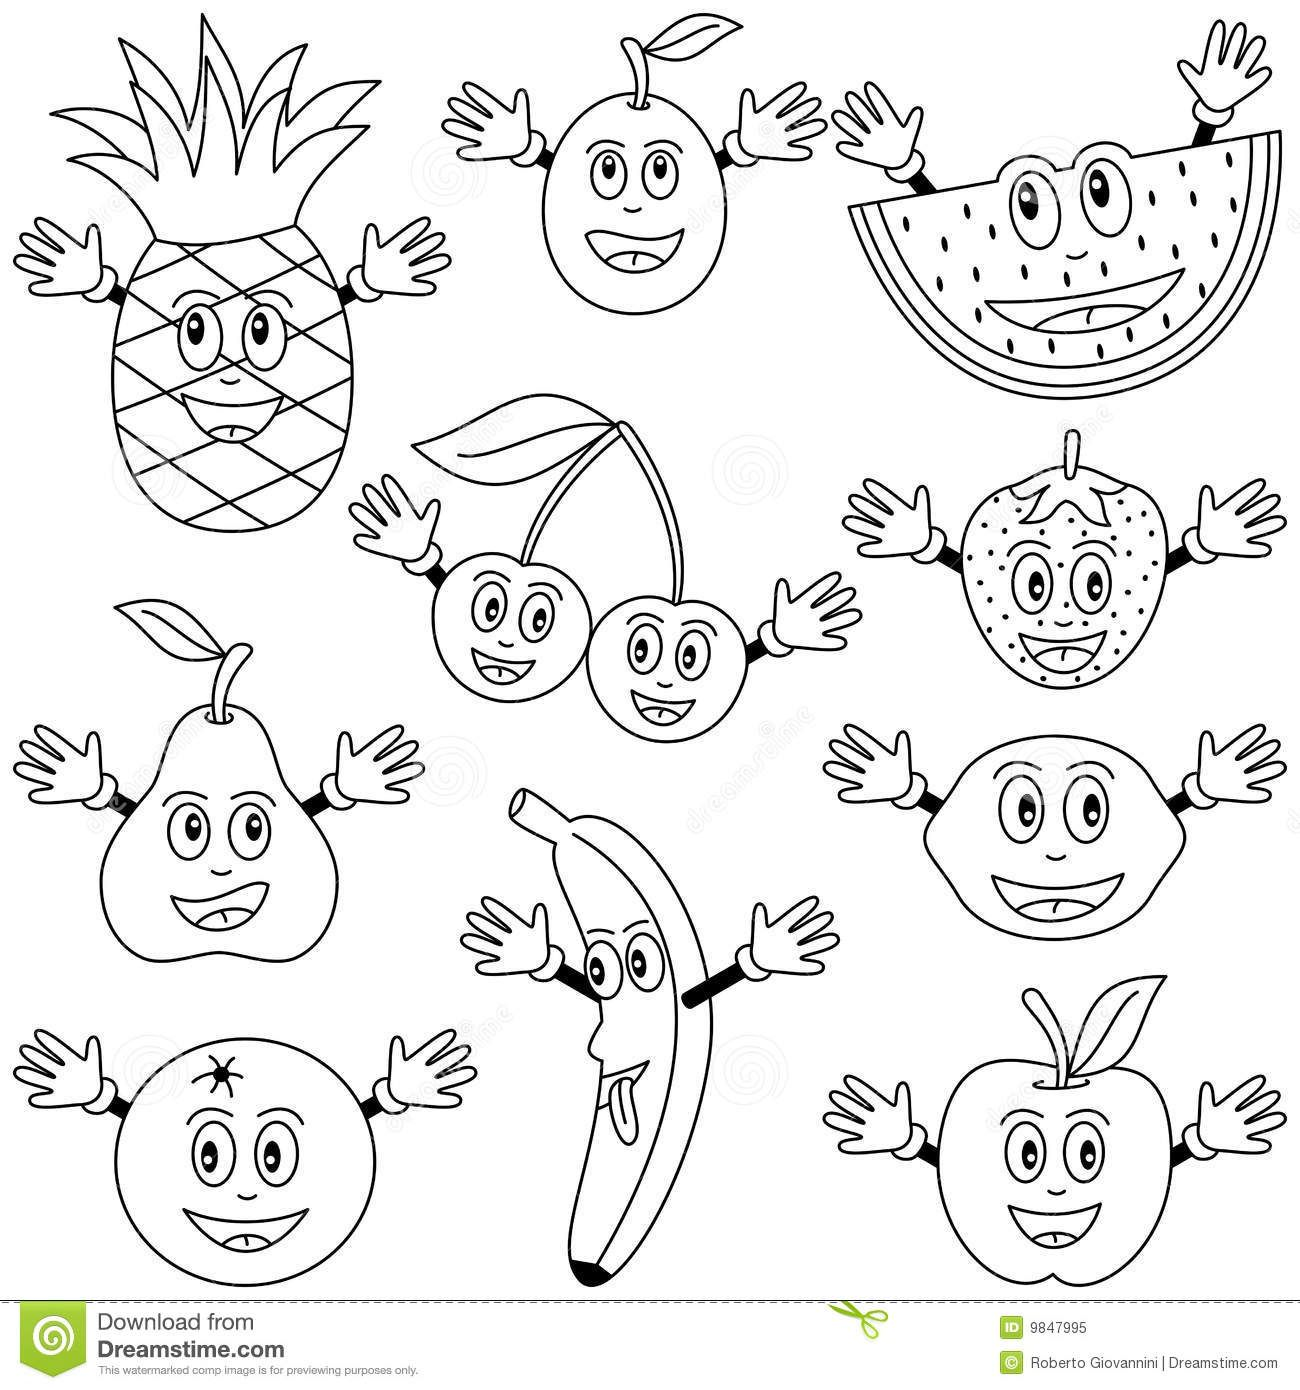 Free coloring pages vegetables and fruit - W For Watermelon Fruit Coloring Pages Cute Drawing Kids